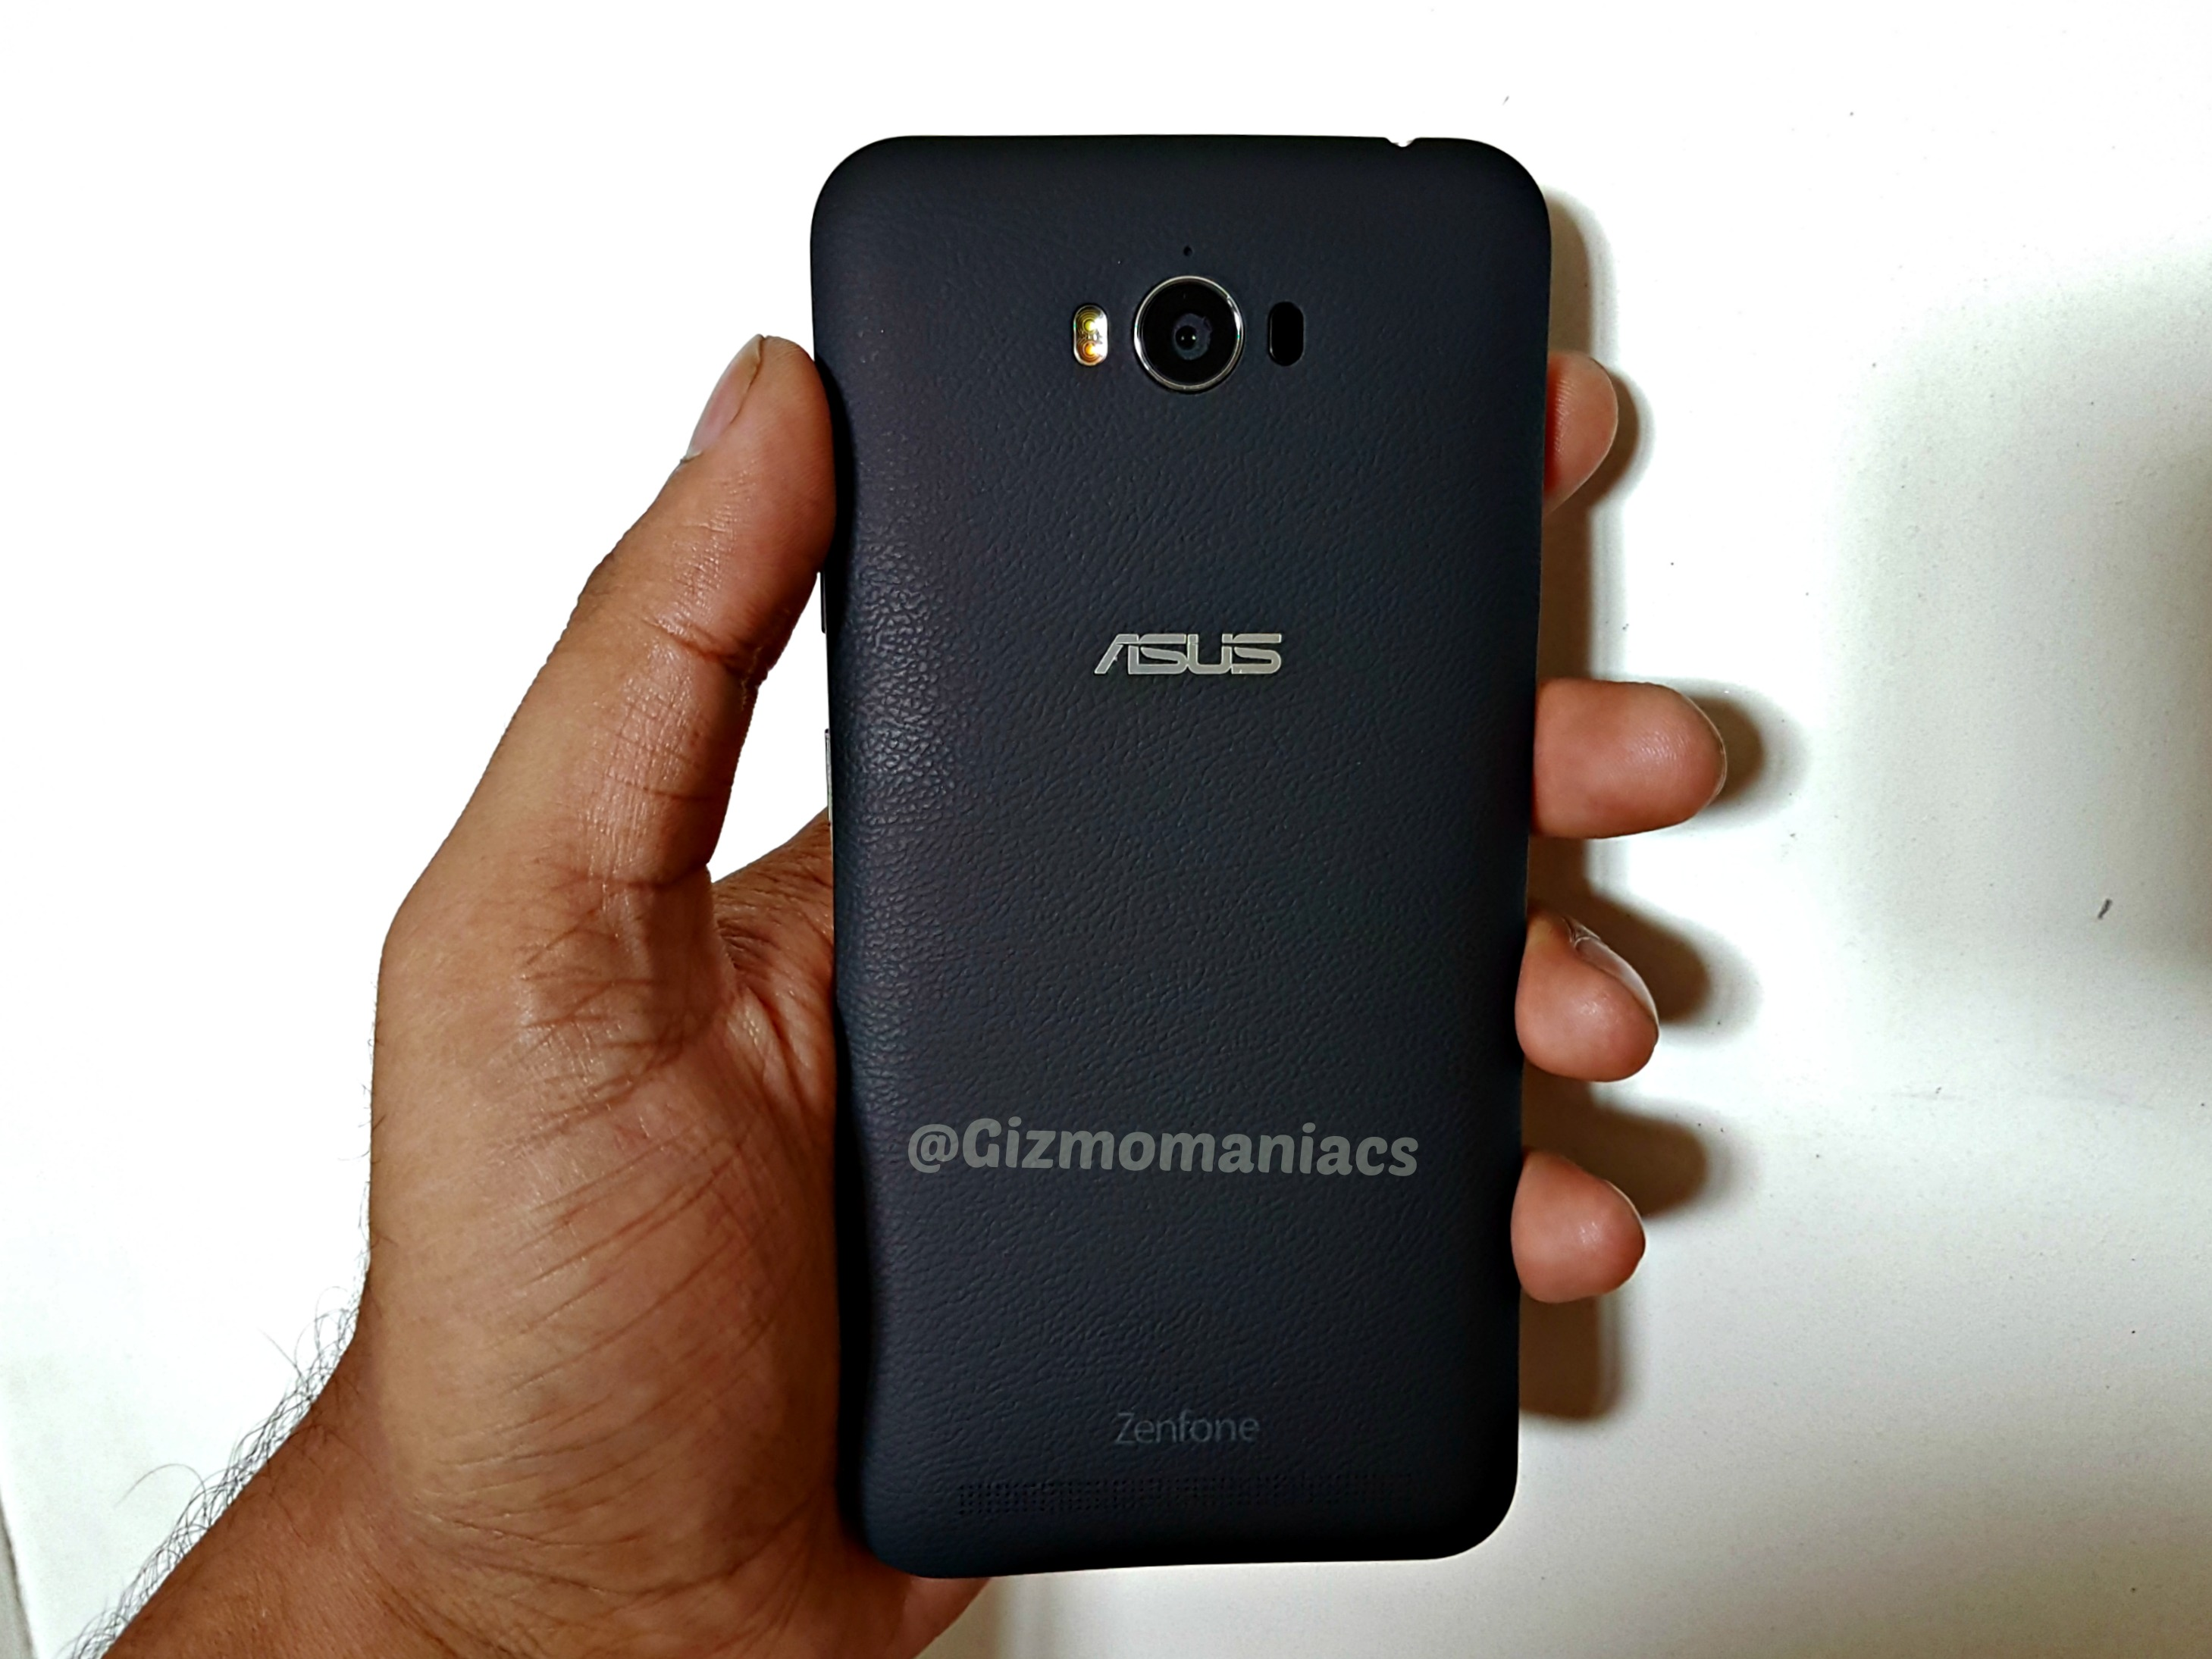 innovative design 15a75 a30c1 Asus Zenfone Max (Z010D) with Octa core processor and Android 6.0 ...